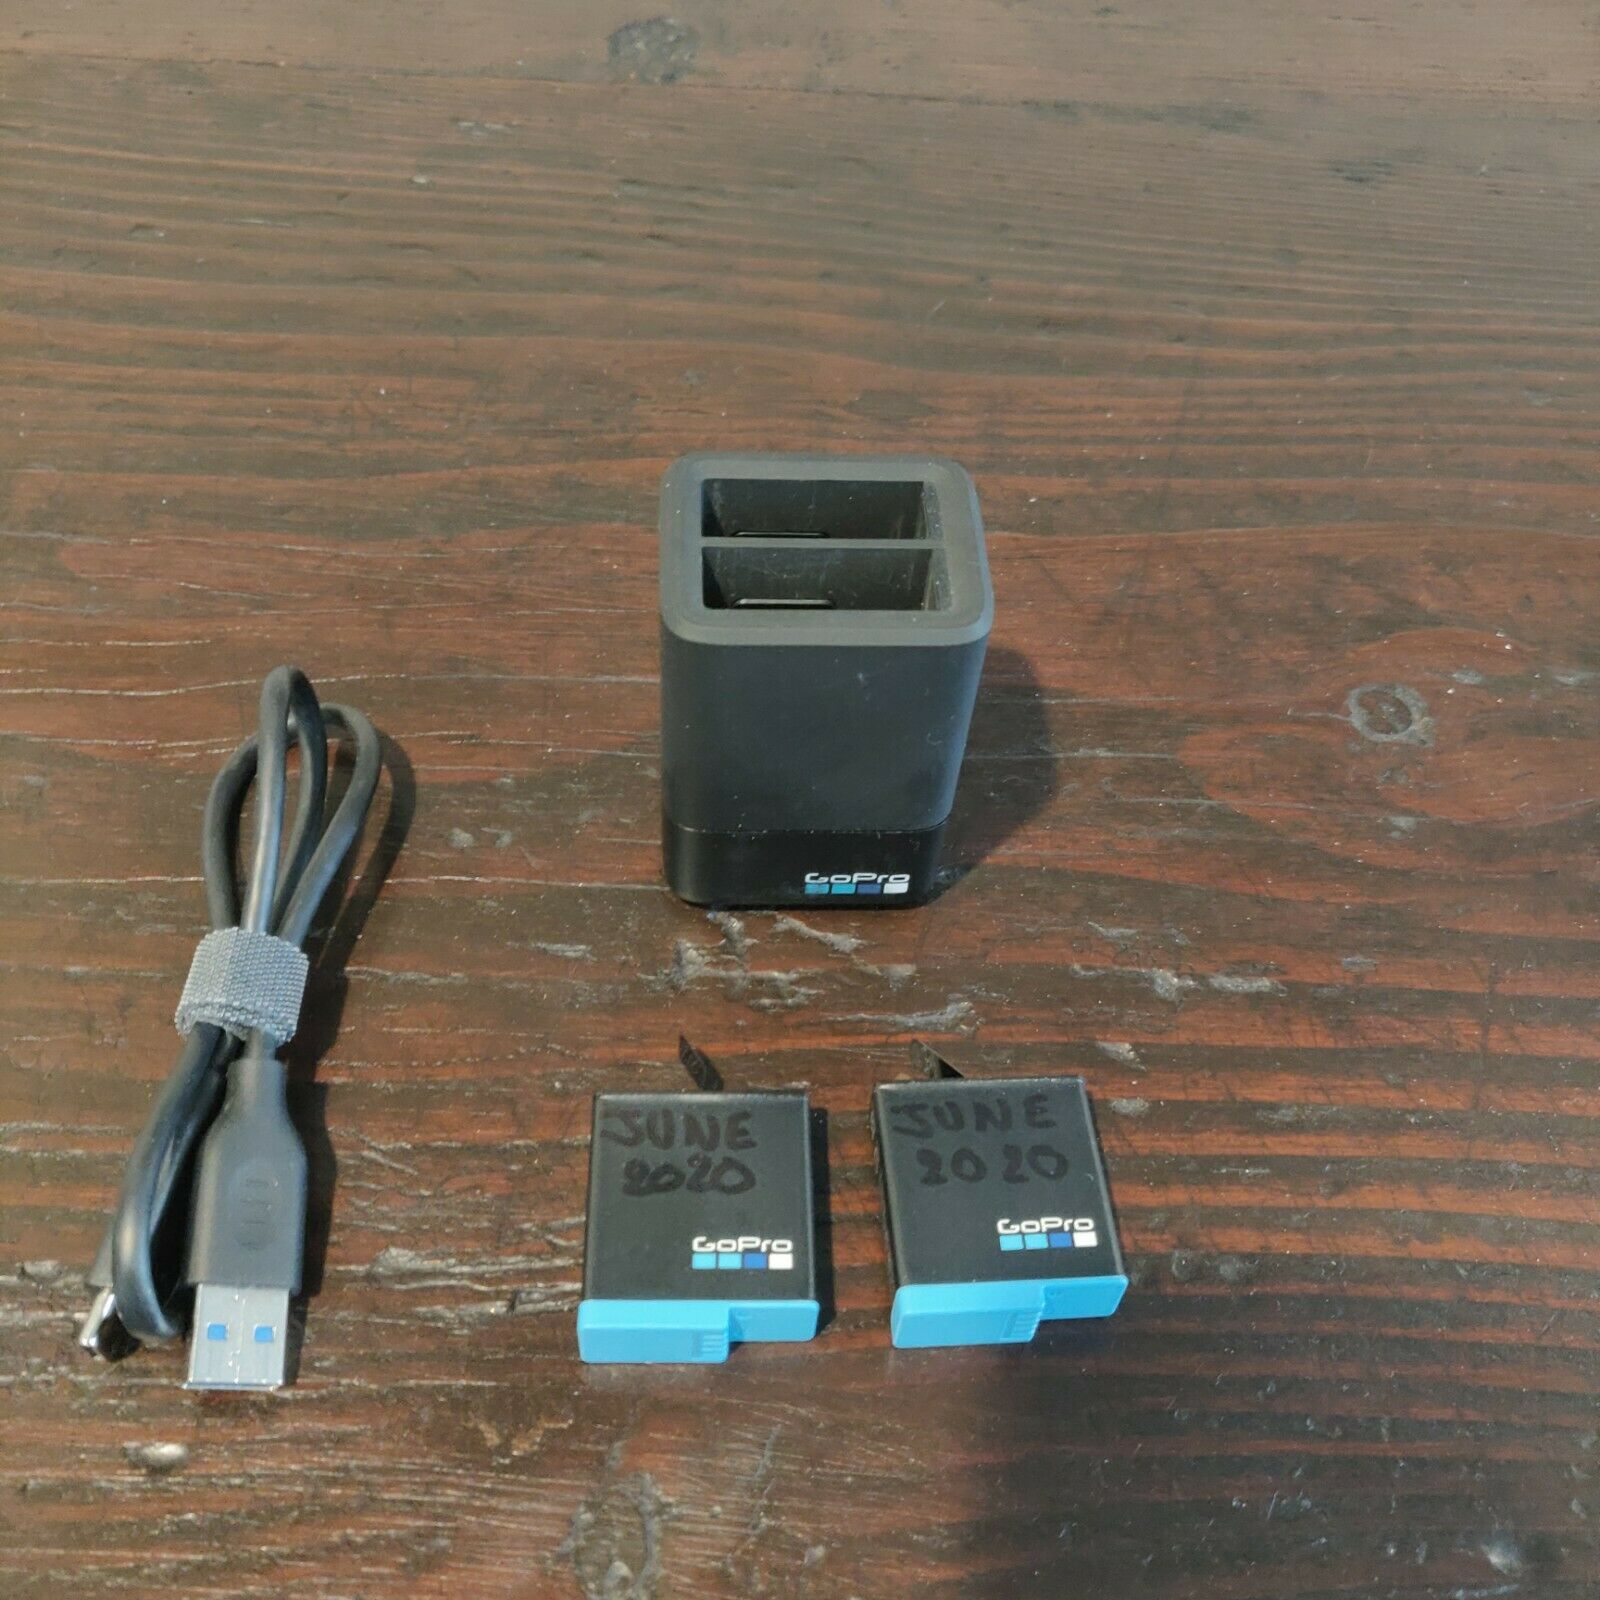 Two GoPro Li-Ion Rechargeable Battery 1220 MAh Never Used Dual Charger Block  - $20.00